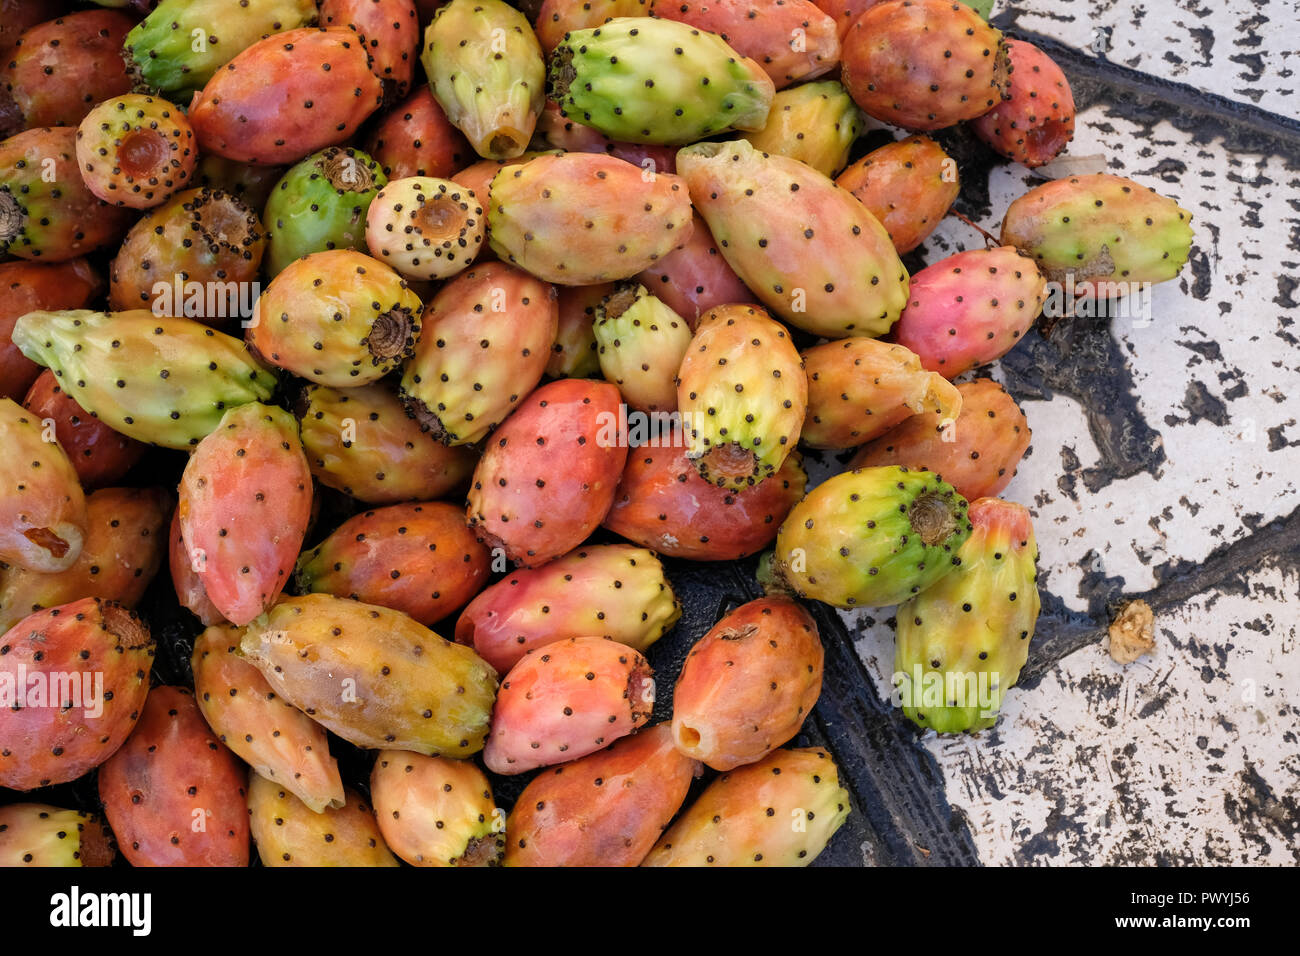 Prickly pear cactus fruit on a street in Trani, Puglia, Italy. They have just been washed by a street seller. - Stock Image